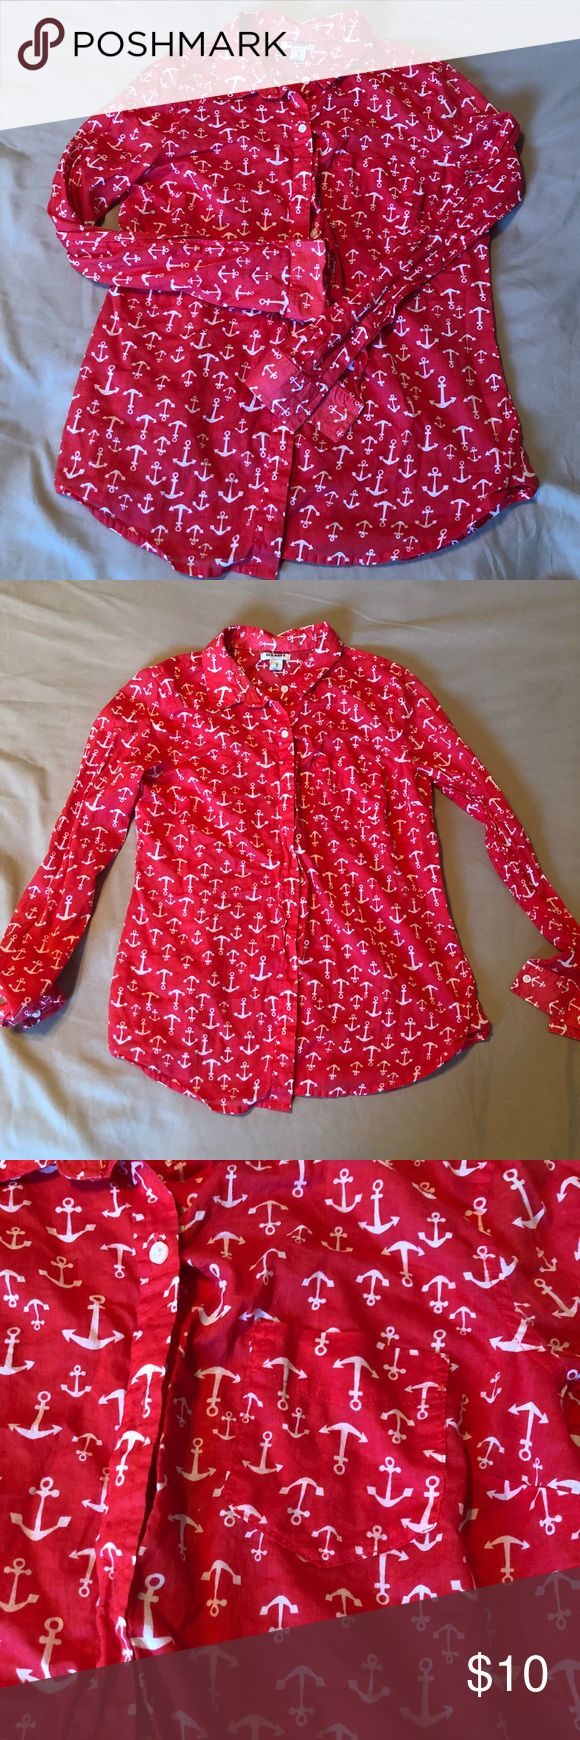 Red ANCHOR long sleeve button down shirt Women's button down shirt. Features cute anchors! Shirt is red. I don't think I've ever worn this shirt but it's been in my closet for a while. Size M. Fits TTS. Tops Button Down Shirts